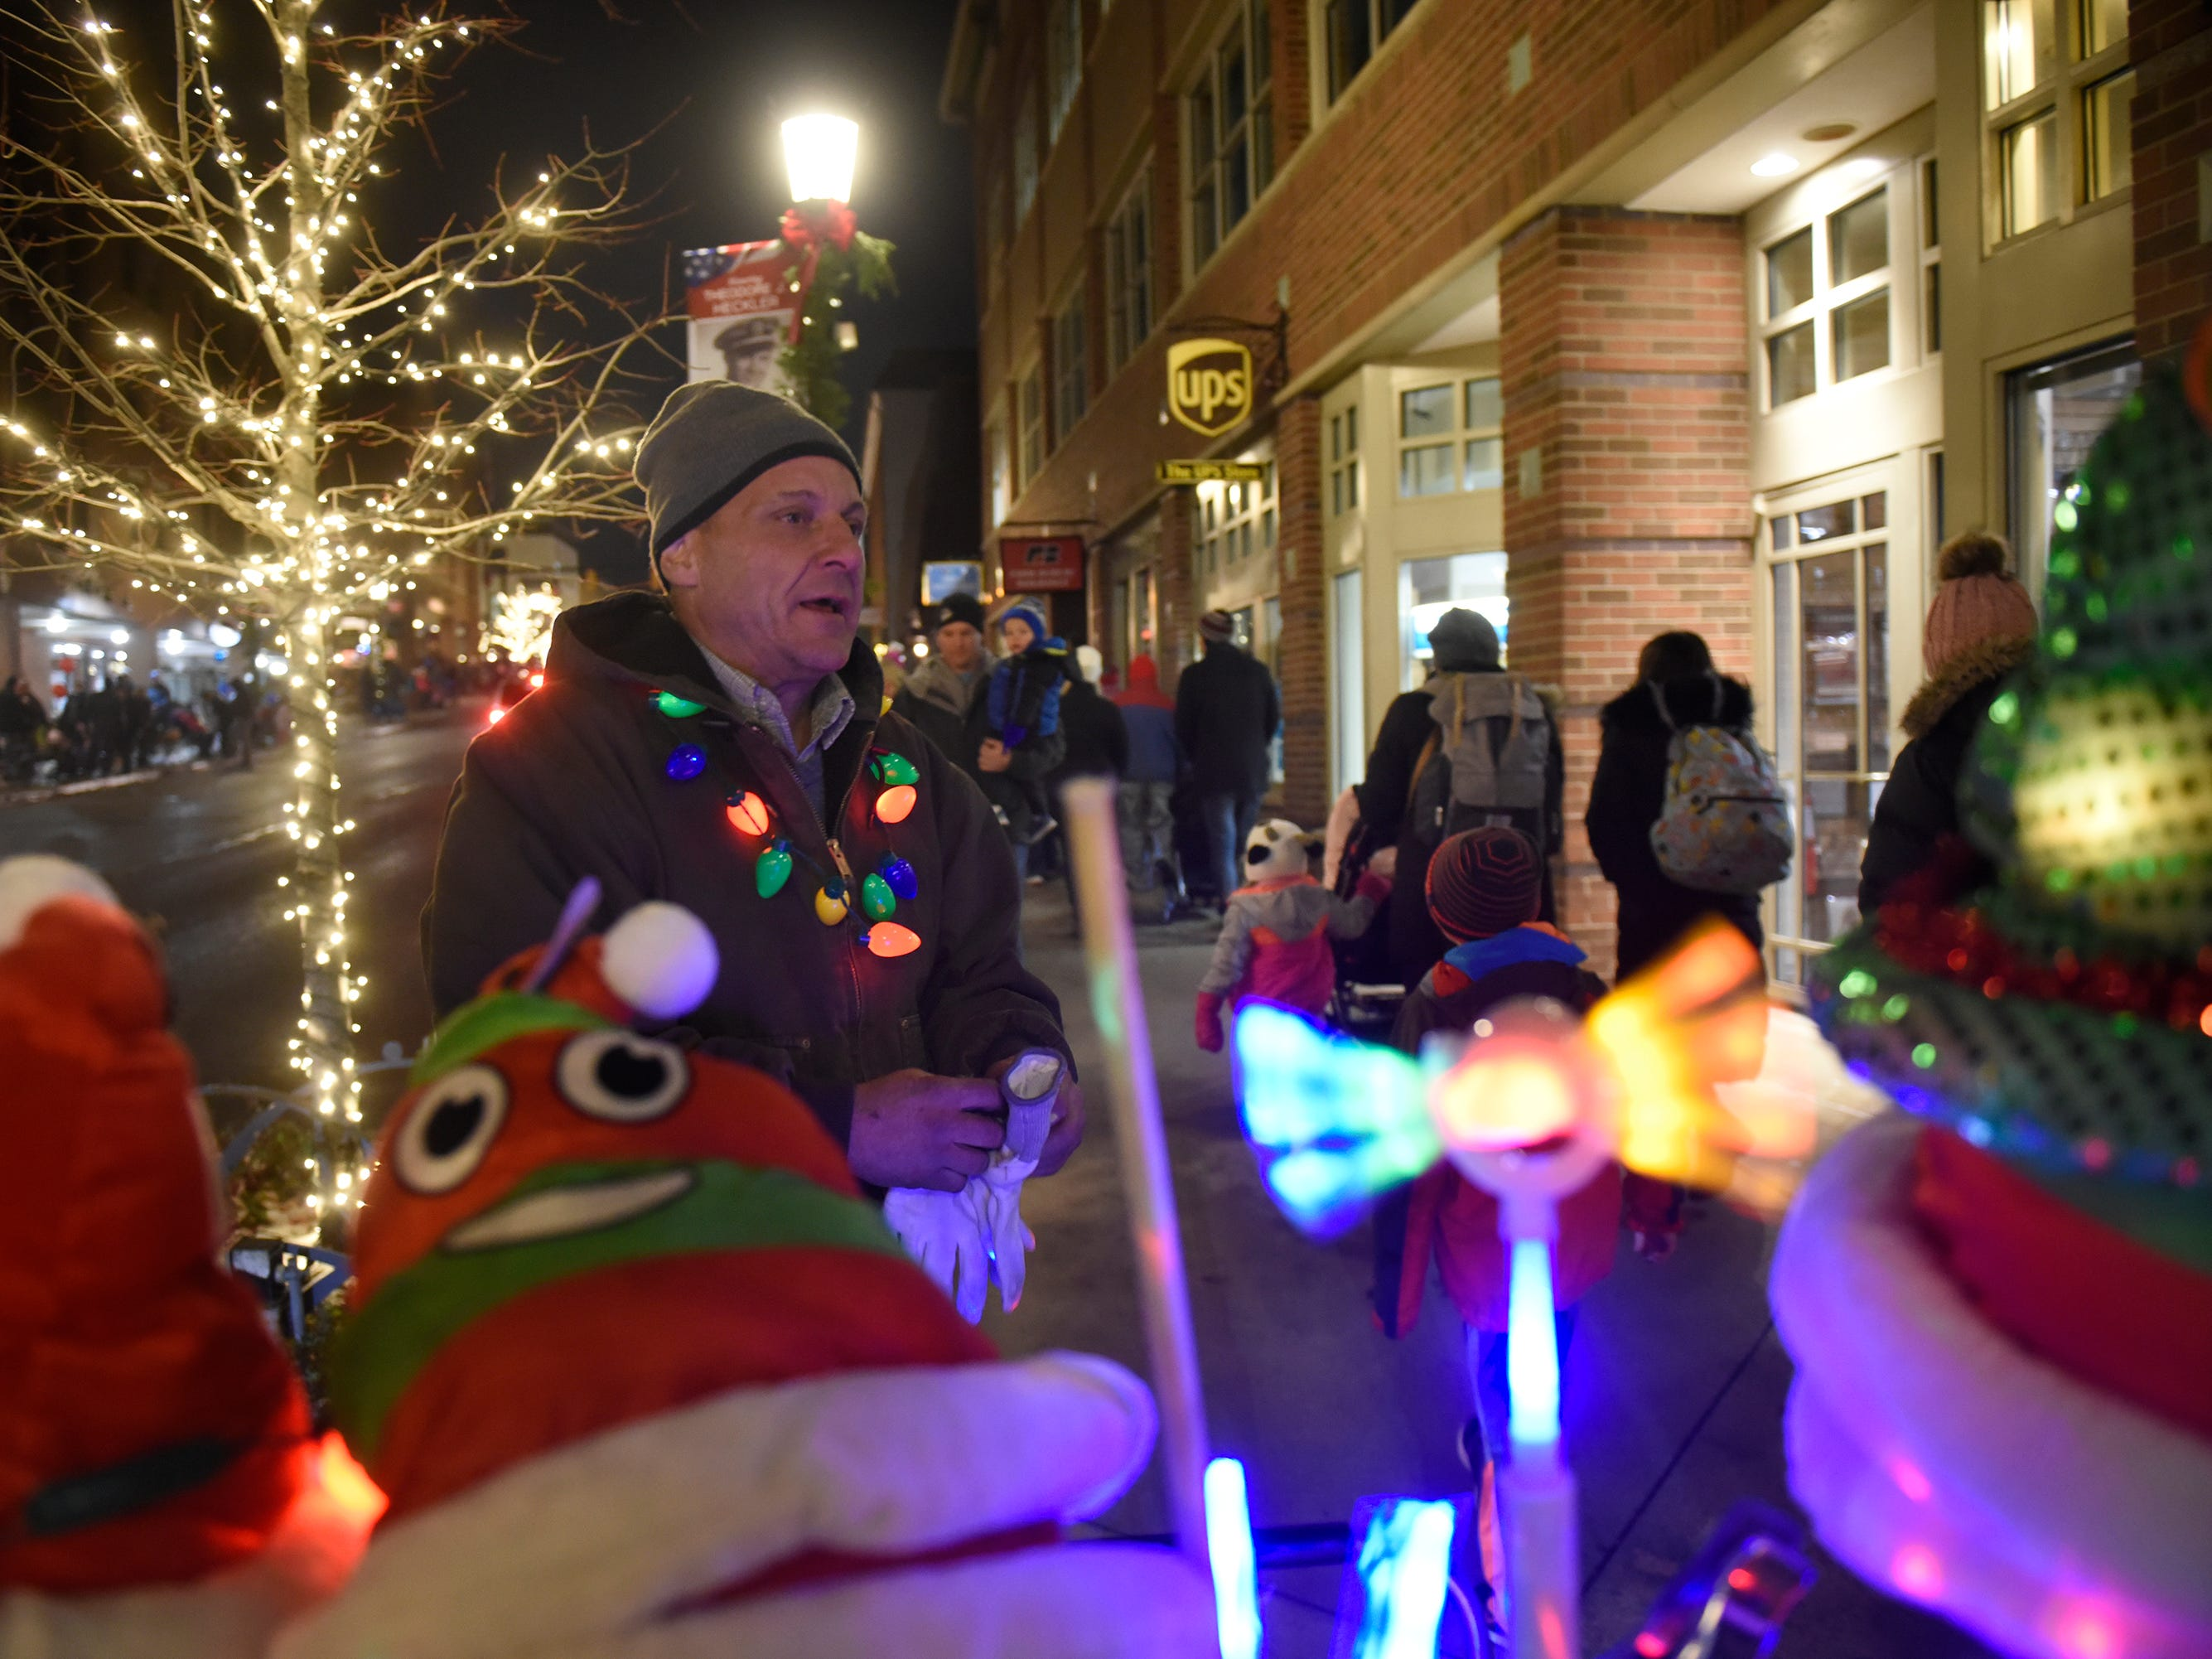 Thomas Gatta hawks lighted toys and wearbles before the start of the Holiday Lighted Parade in downtown Northville, Nov. 16, 2018.